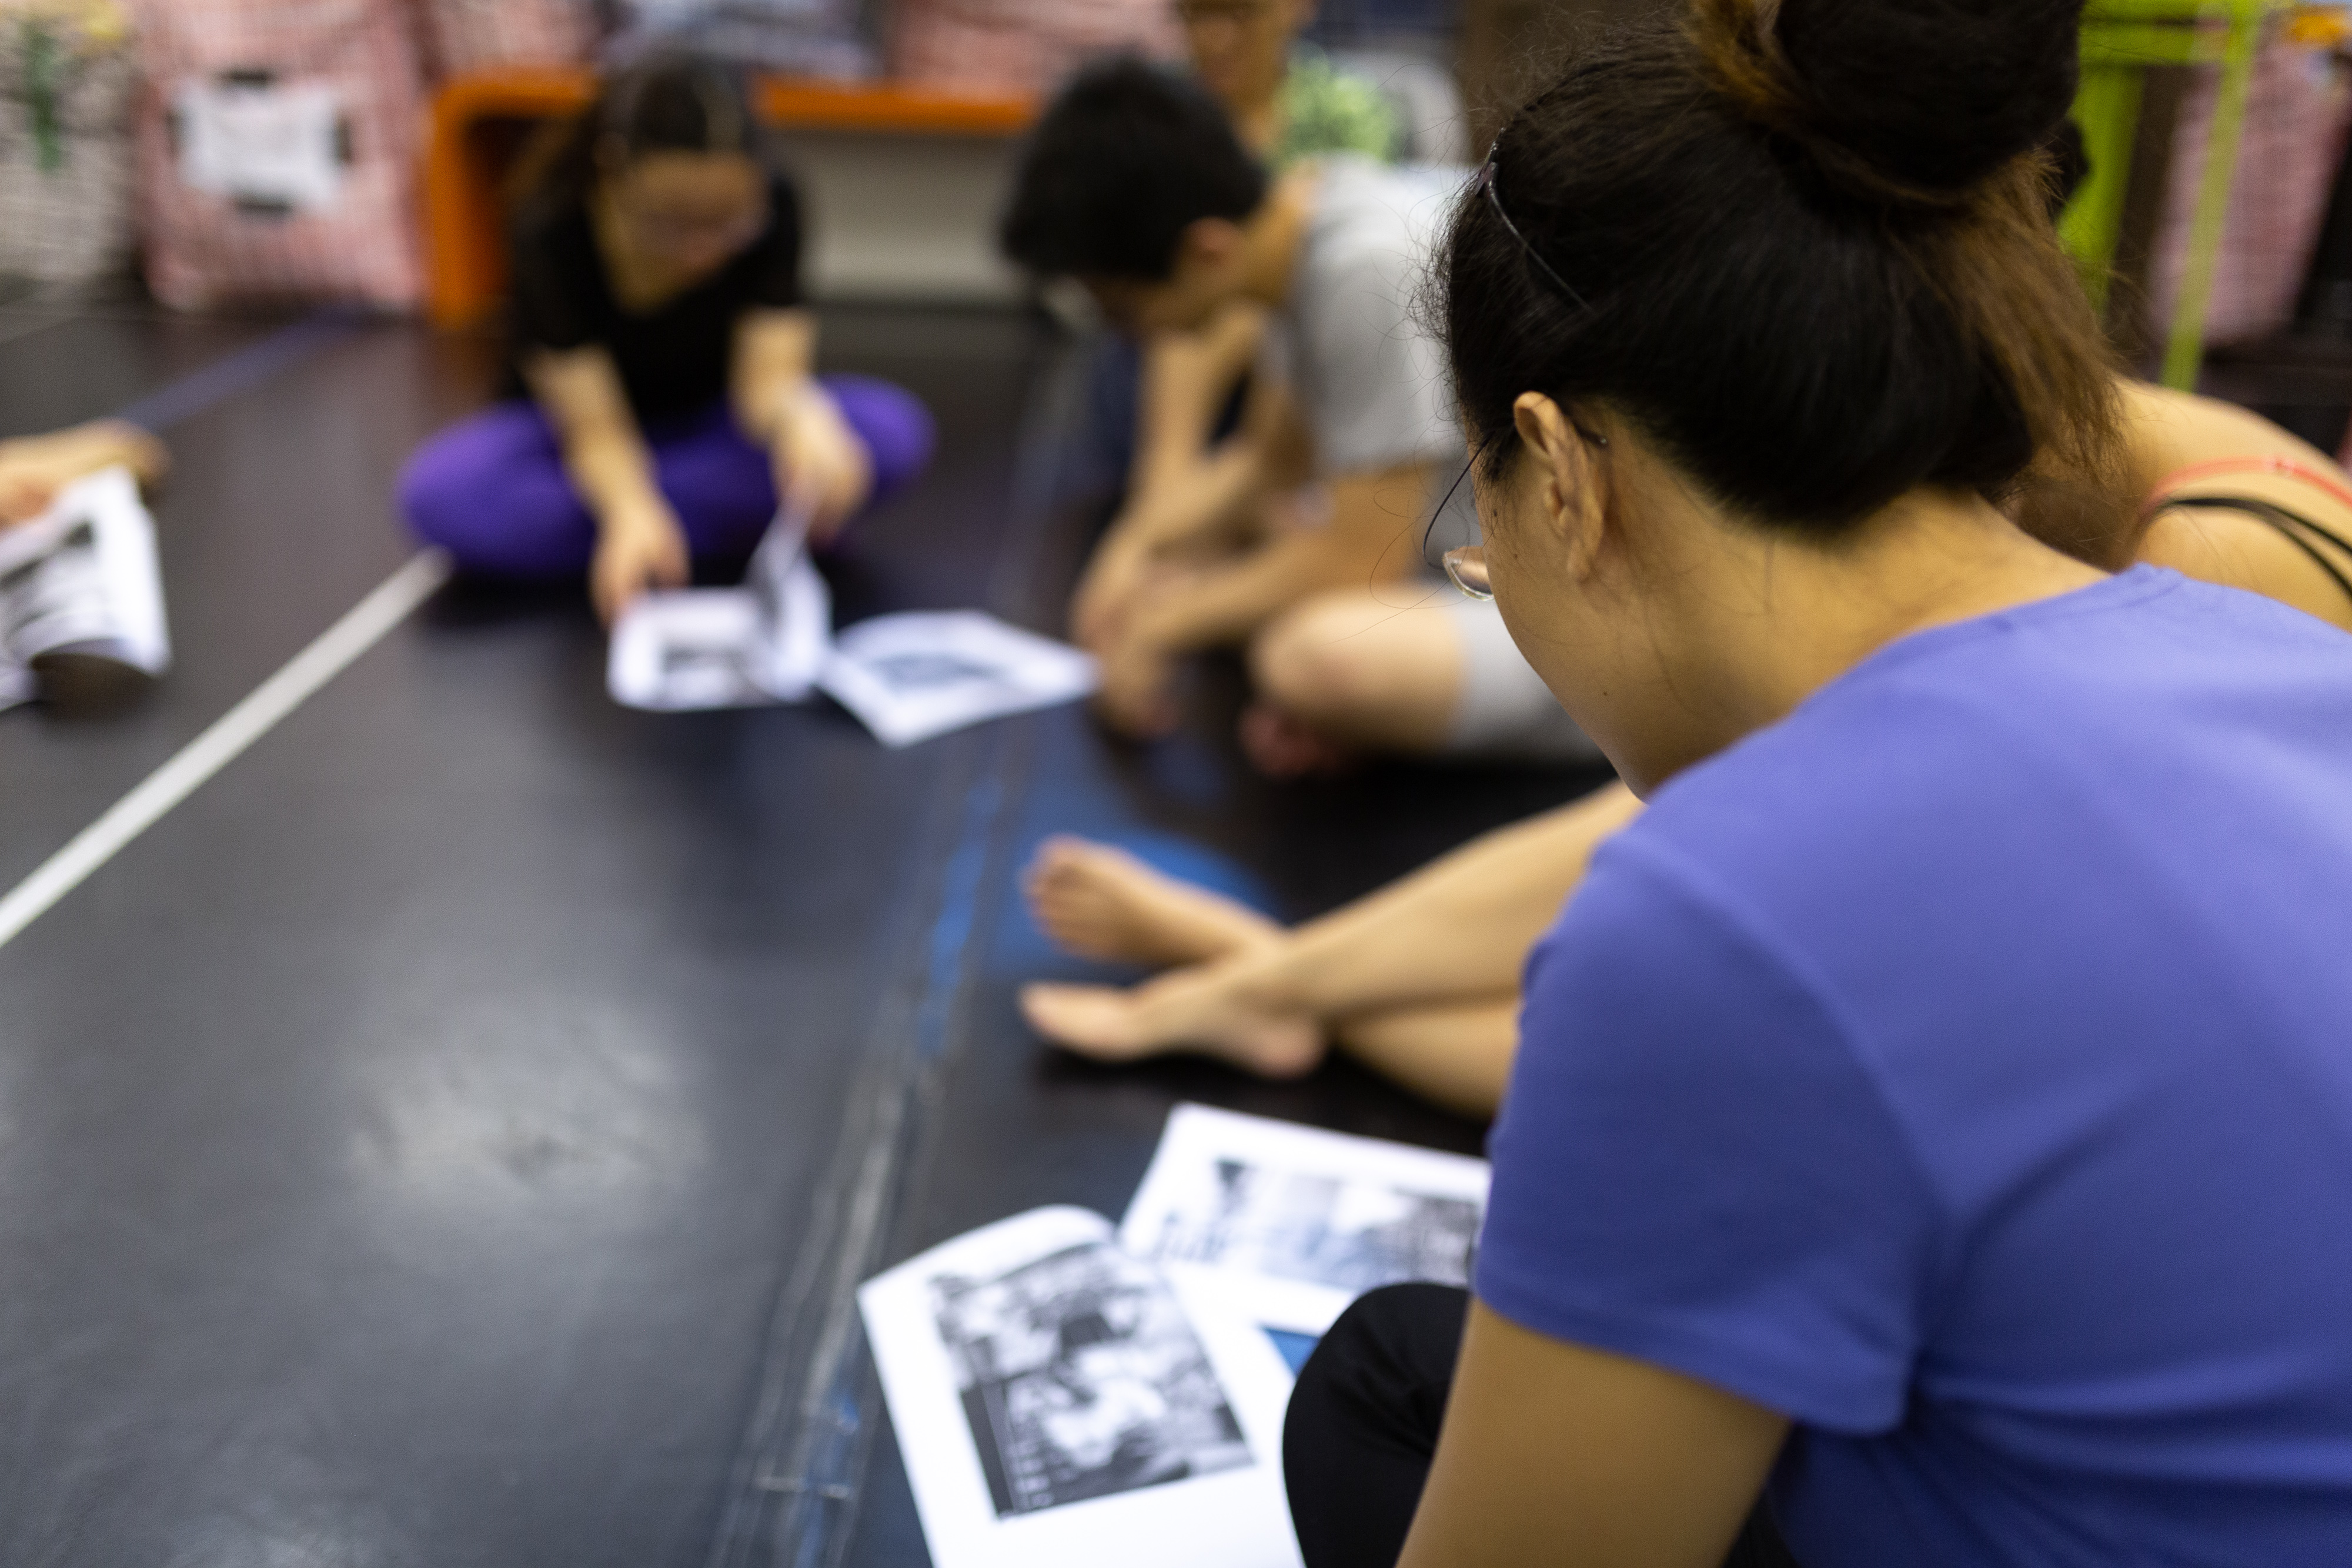 Rooftop Productions • Hong Kong School Drama Courses | Michelle sitting on the floor going over a document with participants in a drama course